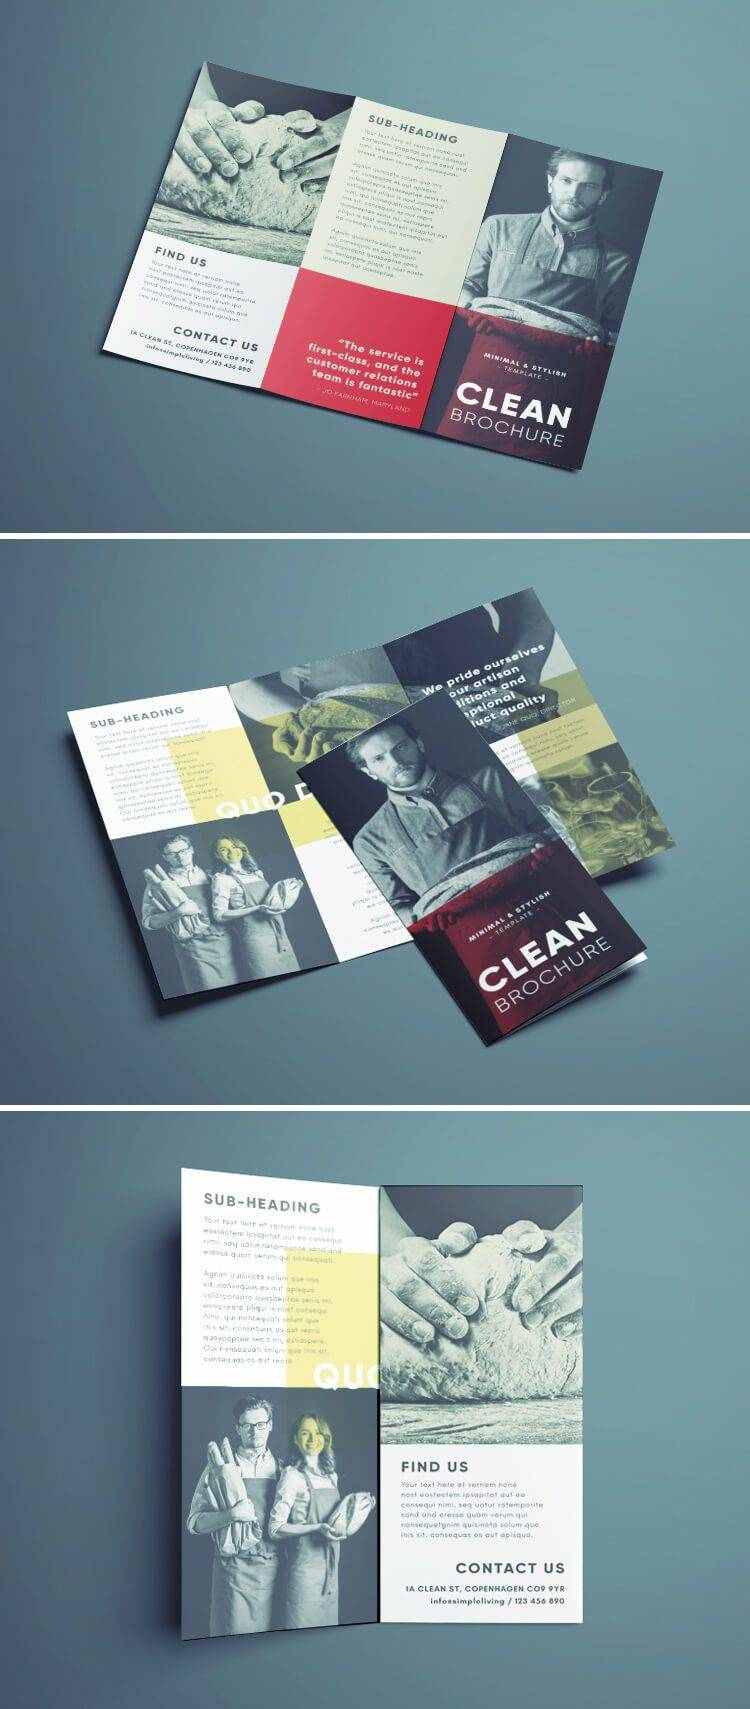 Indesign Templates Free Download